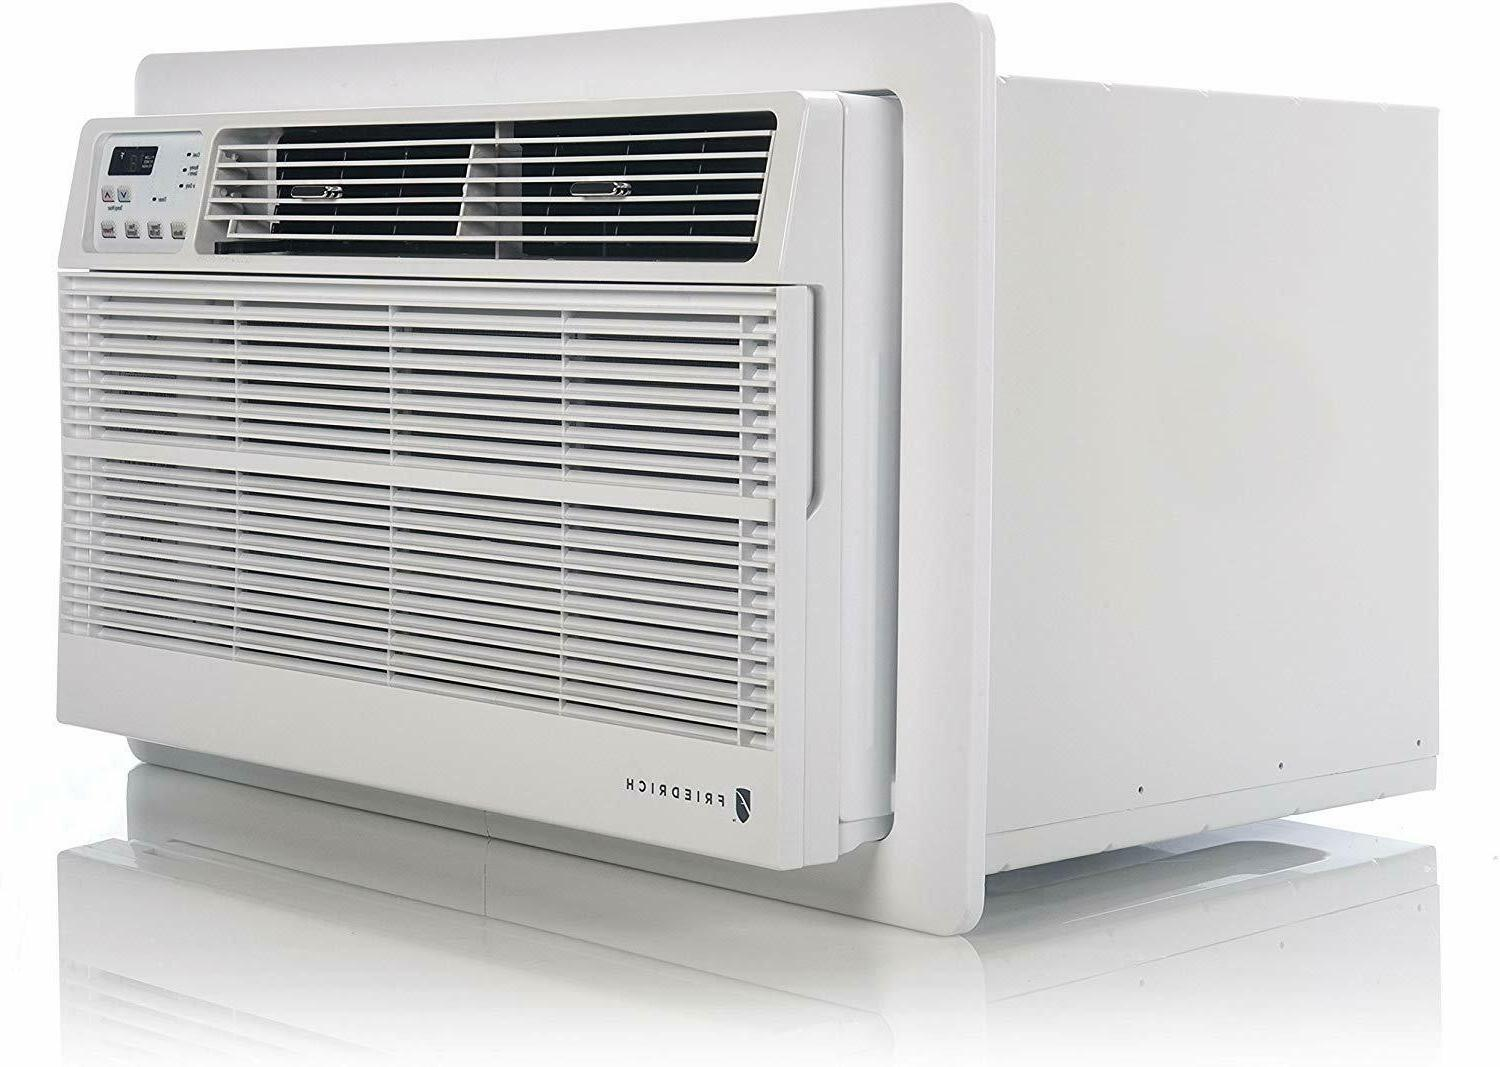 Friedrich 8,000 BTU 9.8 EER 115V Wall Air Conditioner